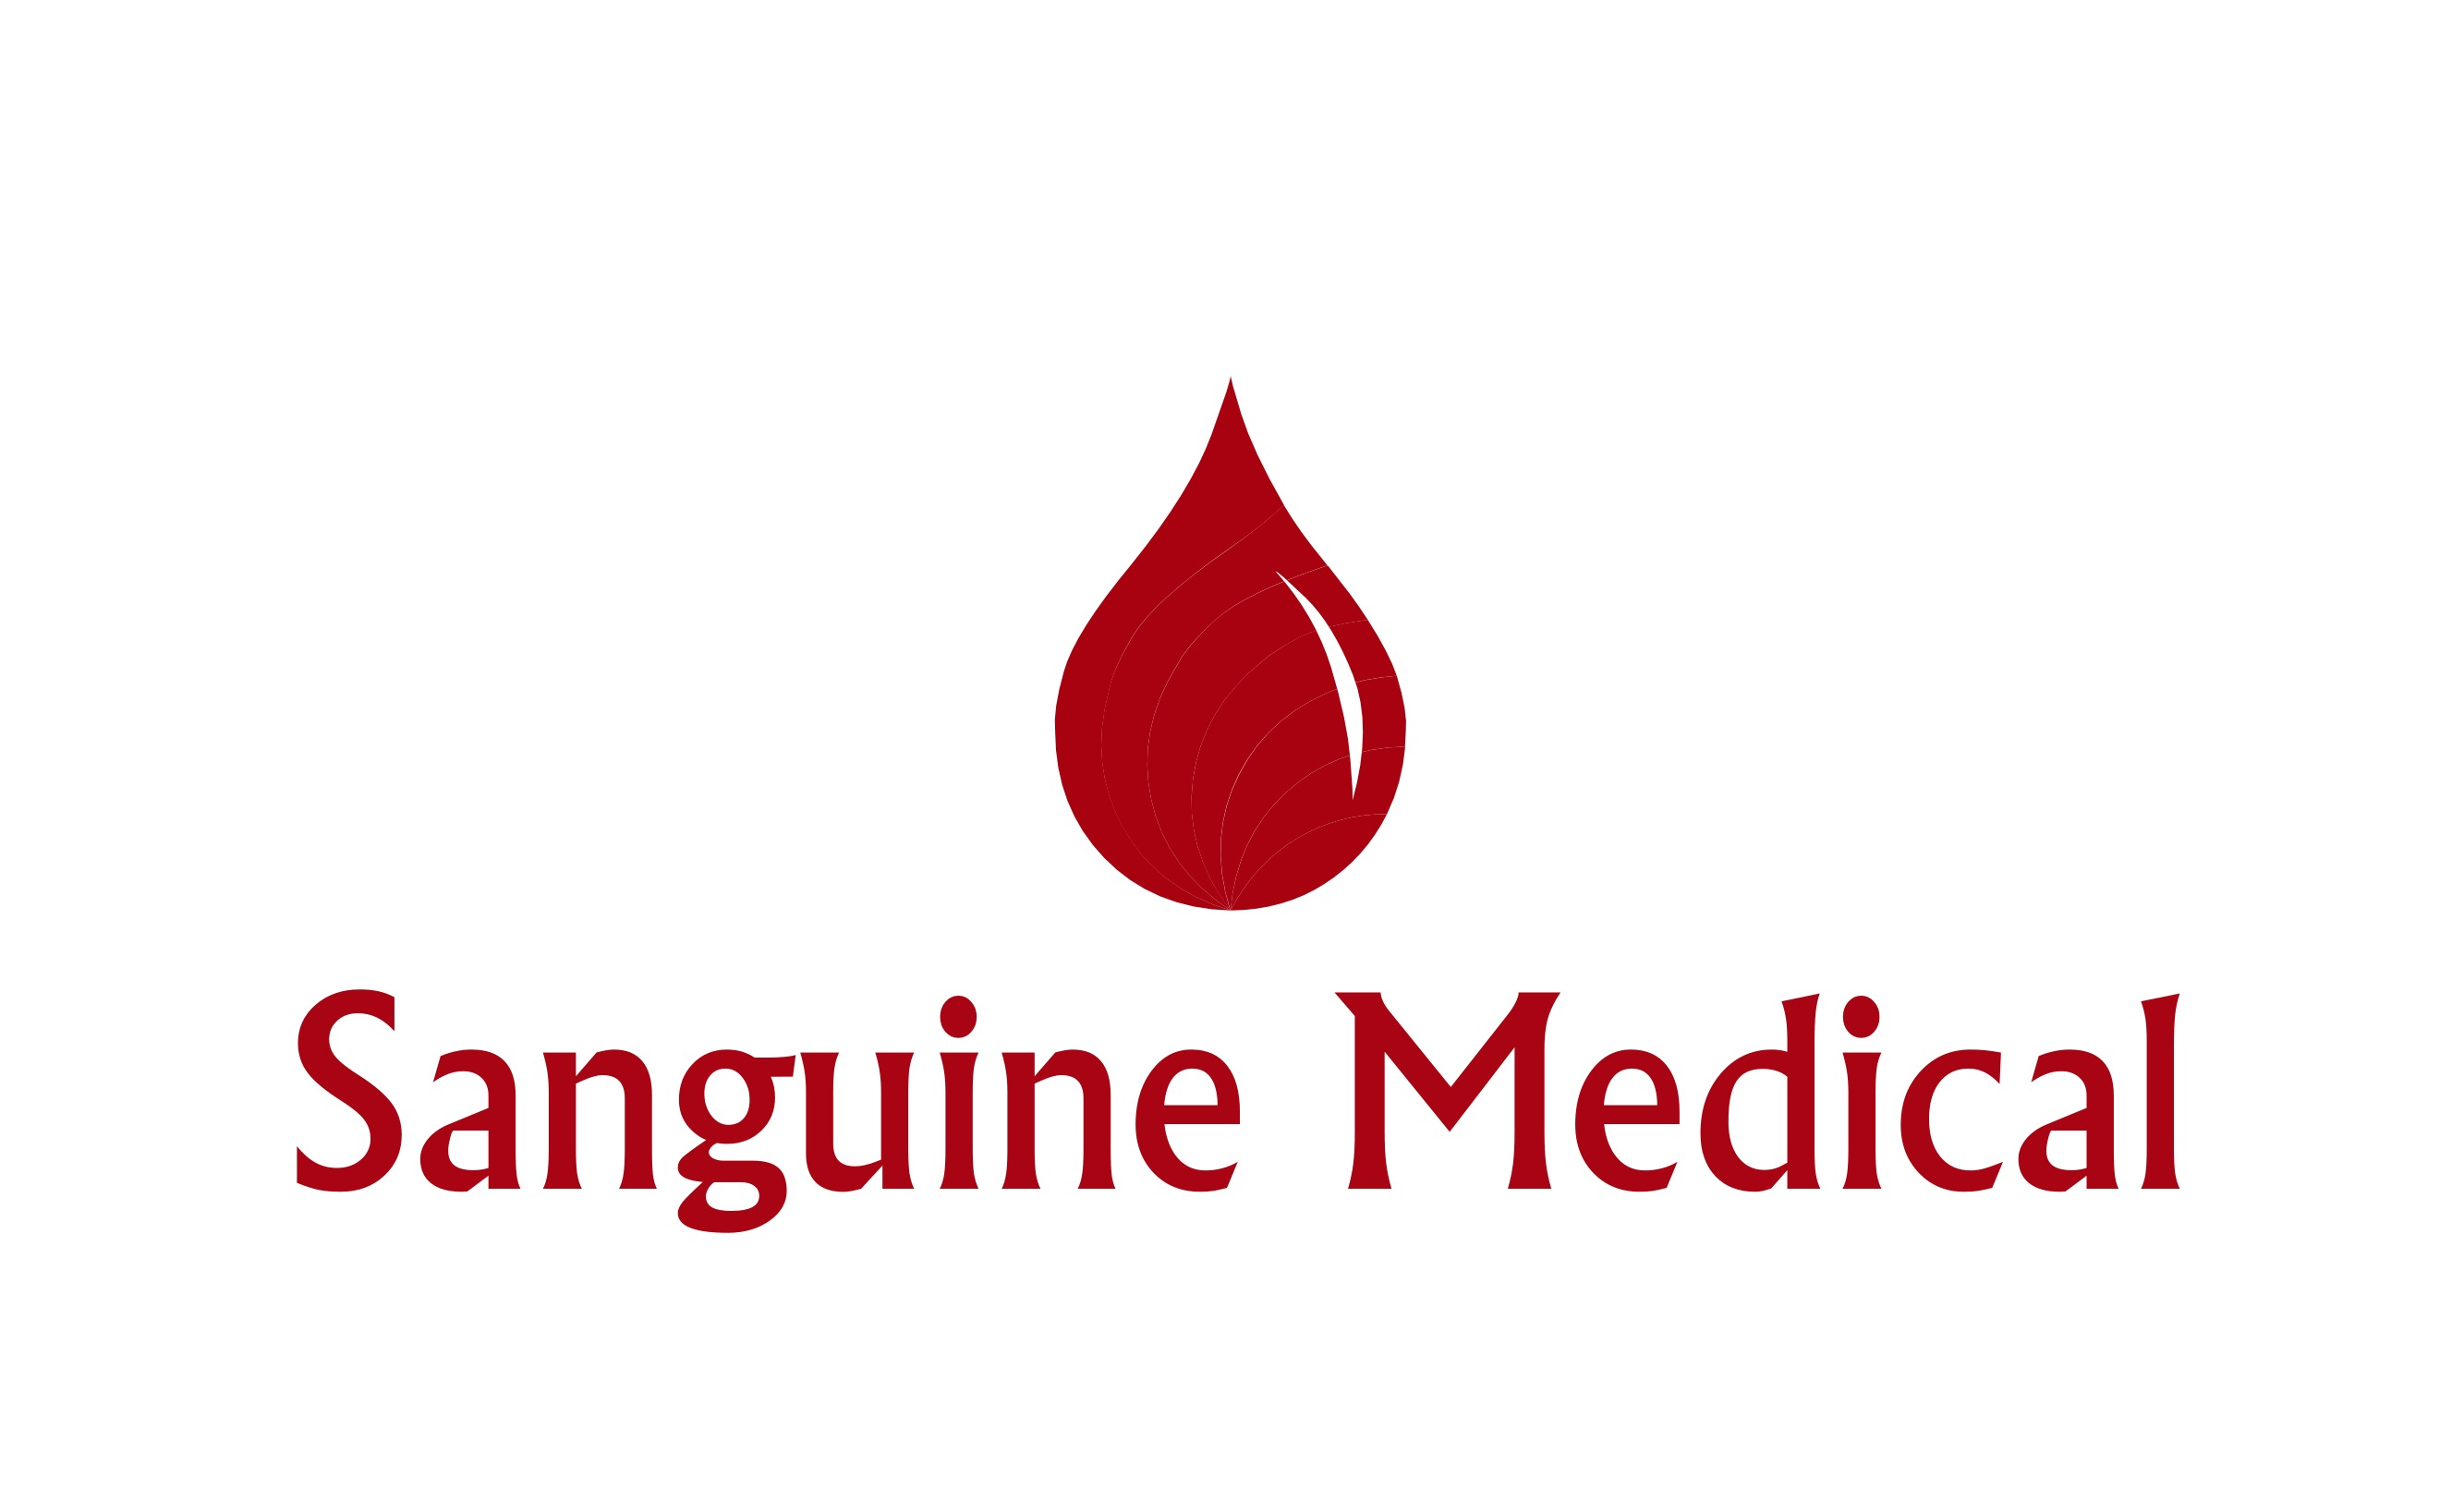 Sanguine Medical Ltd.